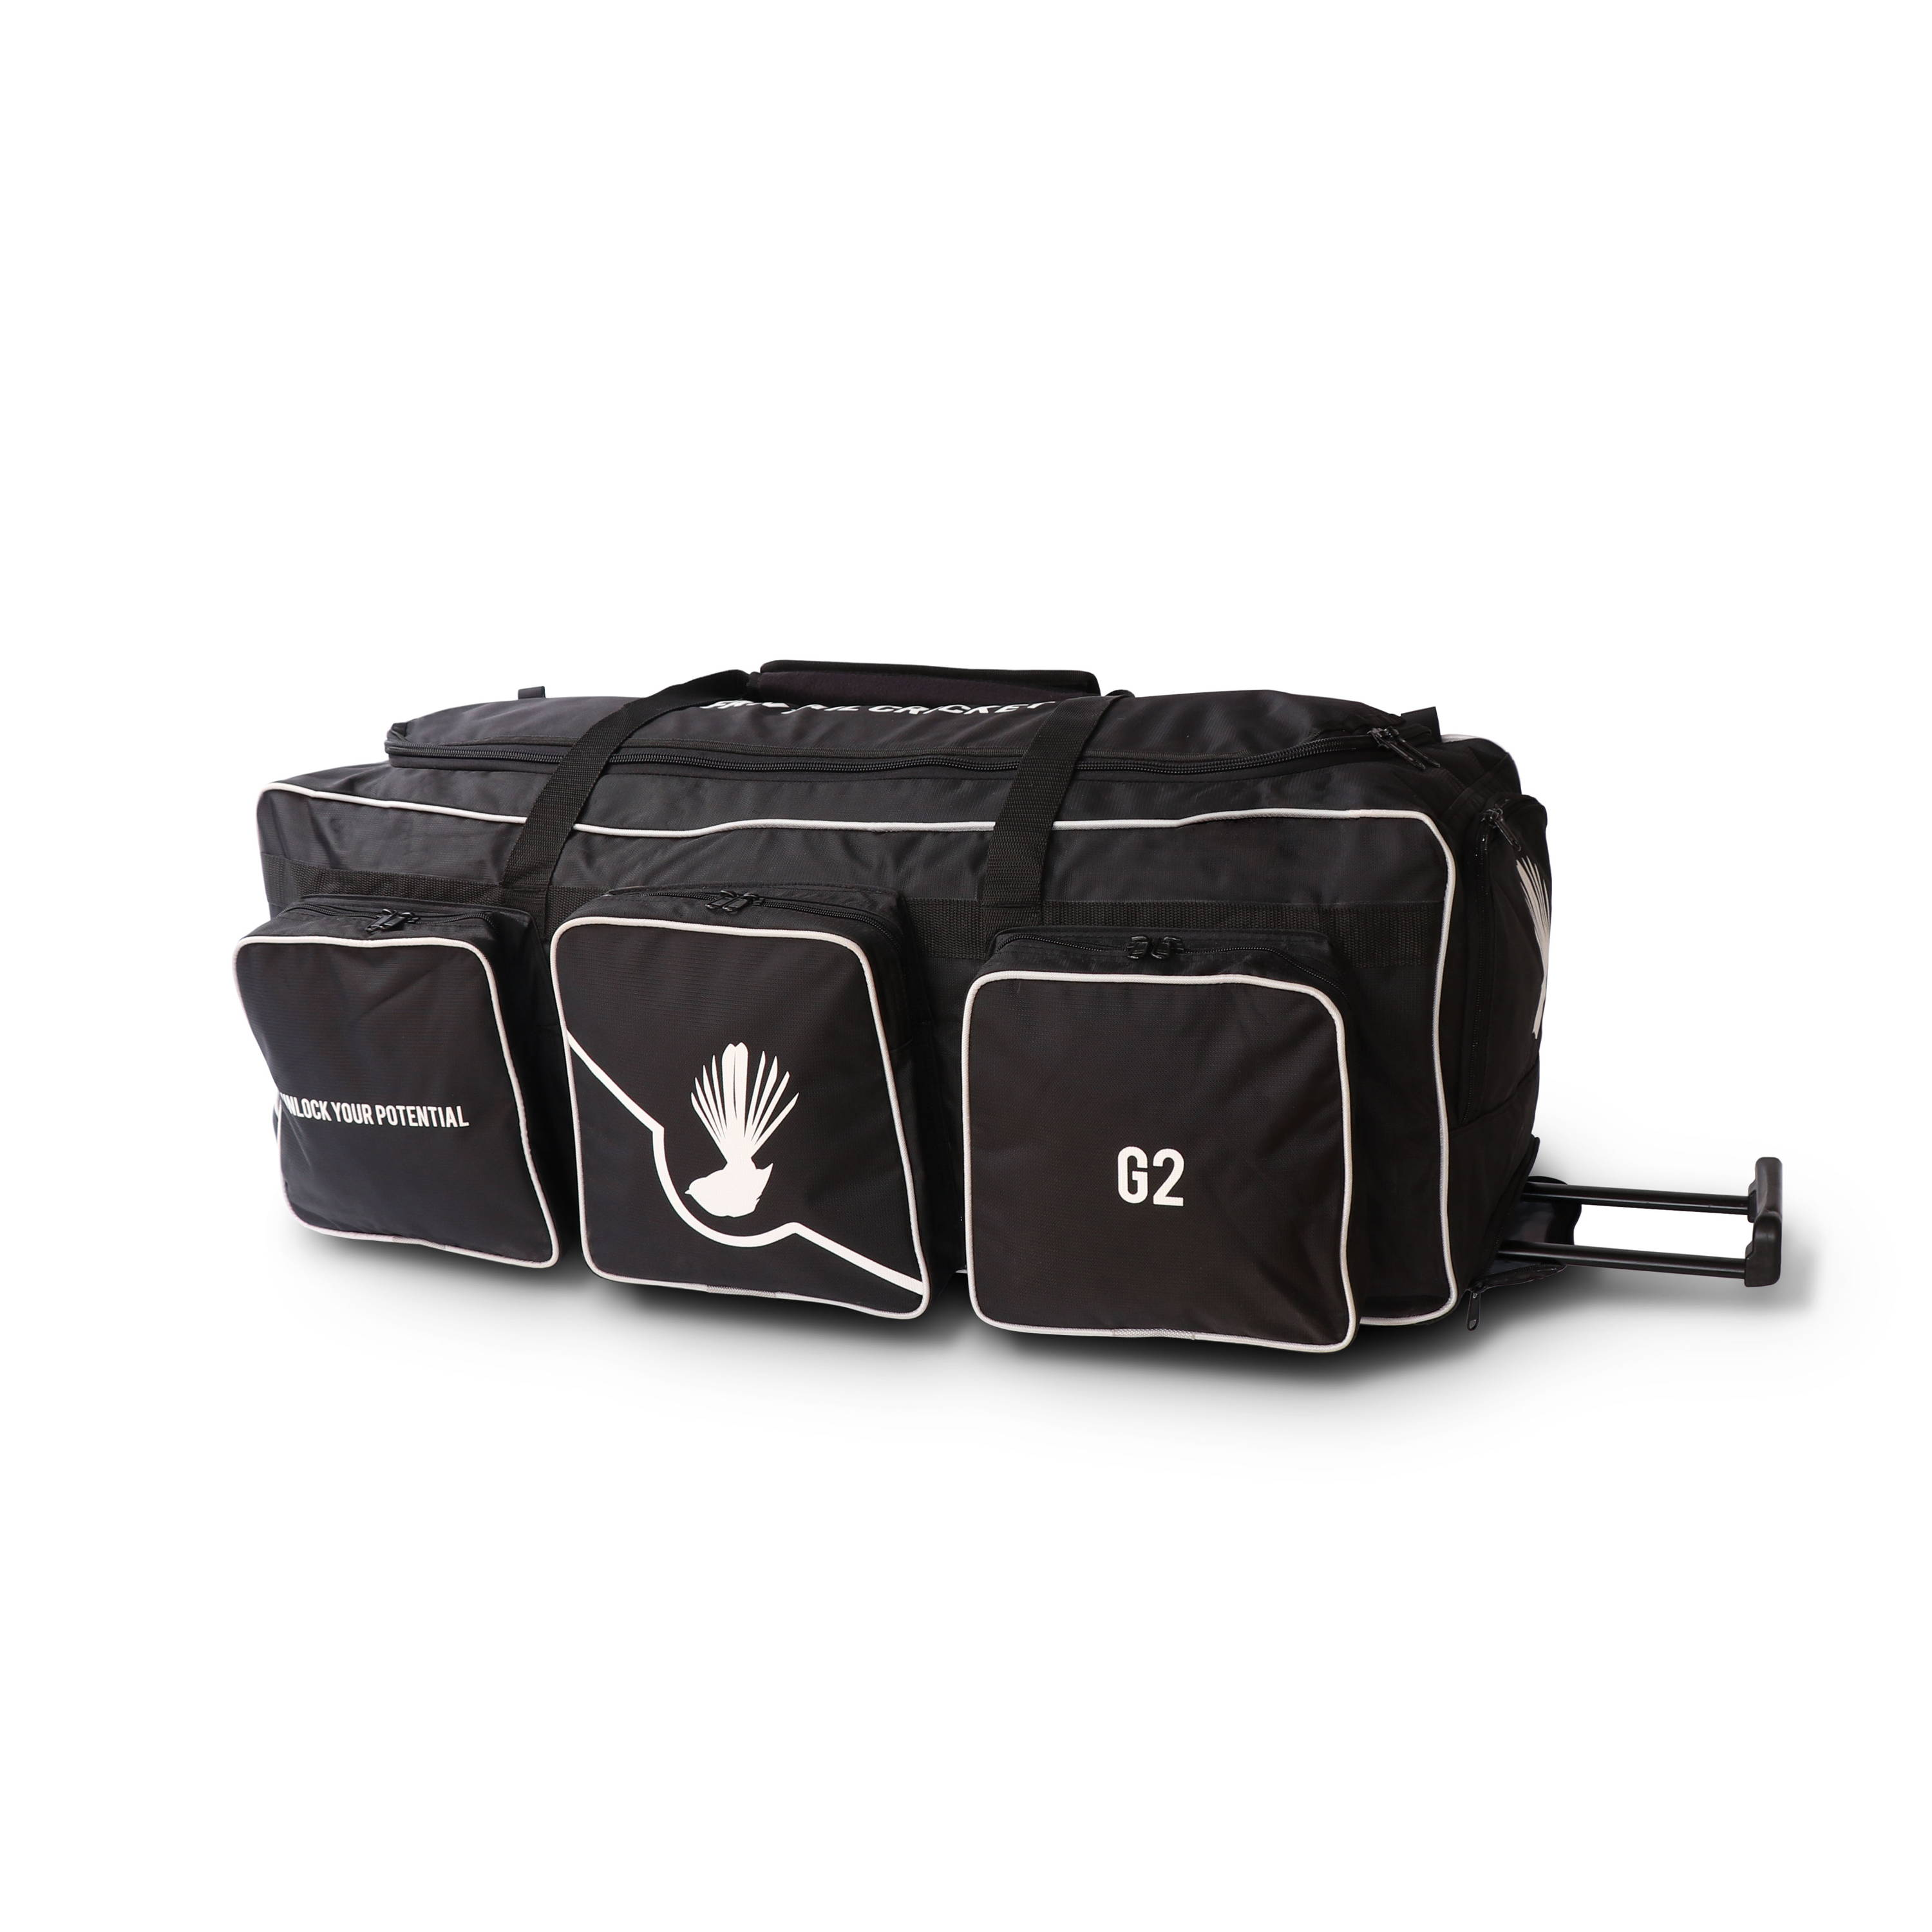 G2 Trolley Kit Bag - Fantail Cricket